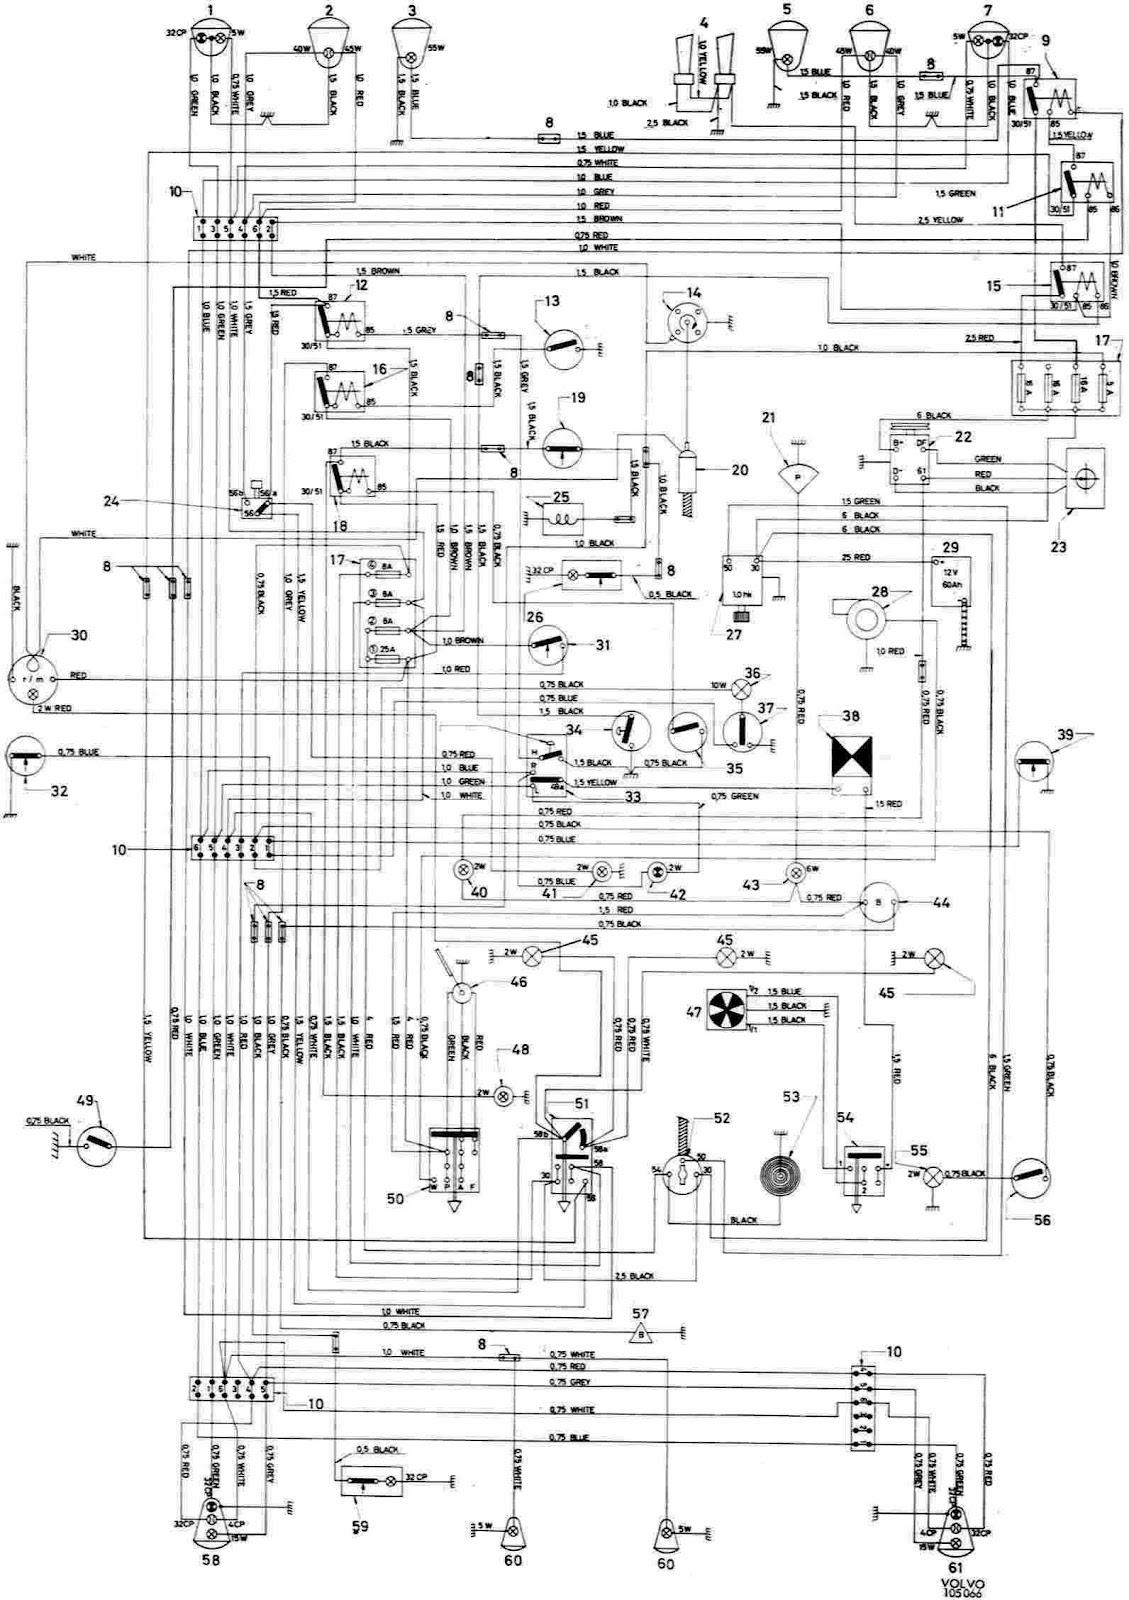 medium resolution of wiring diagram further volvo 240 radio antenna along with 2005 volvo 2005 volvo s40 stereo wiring harness diagram